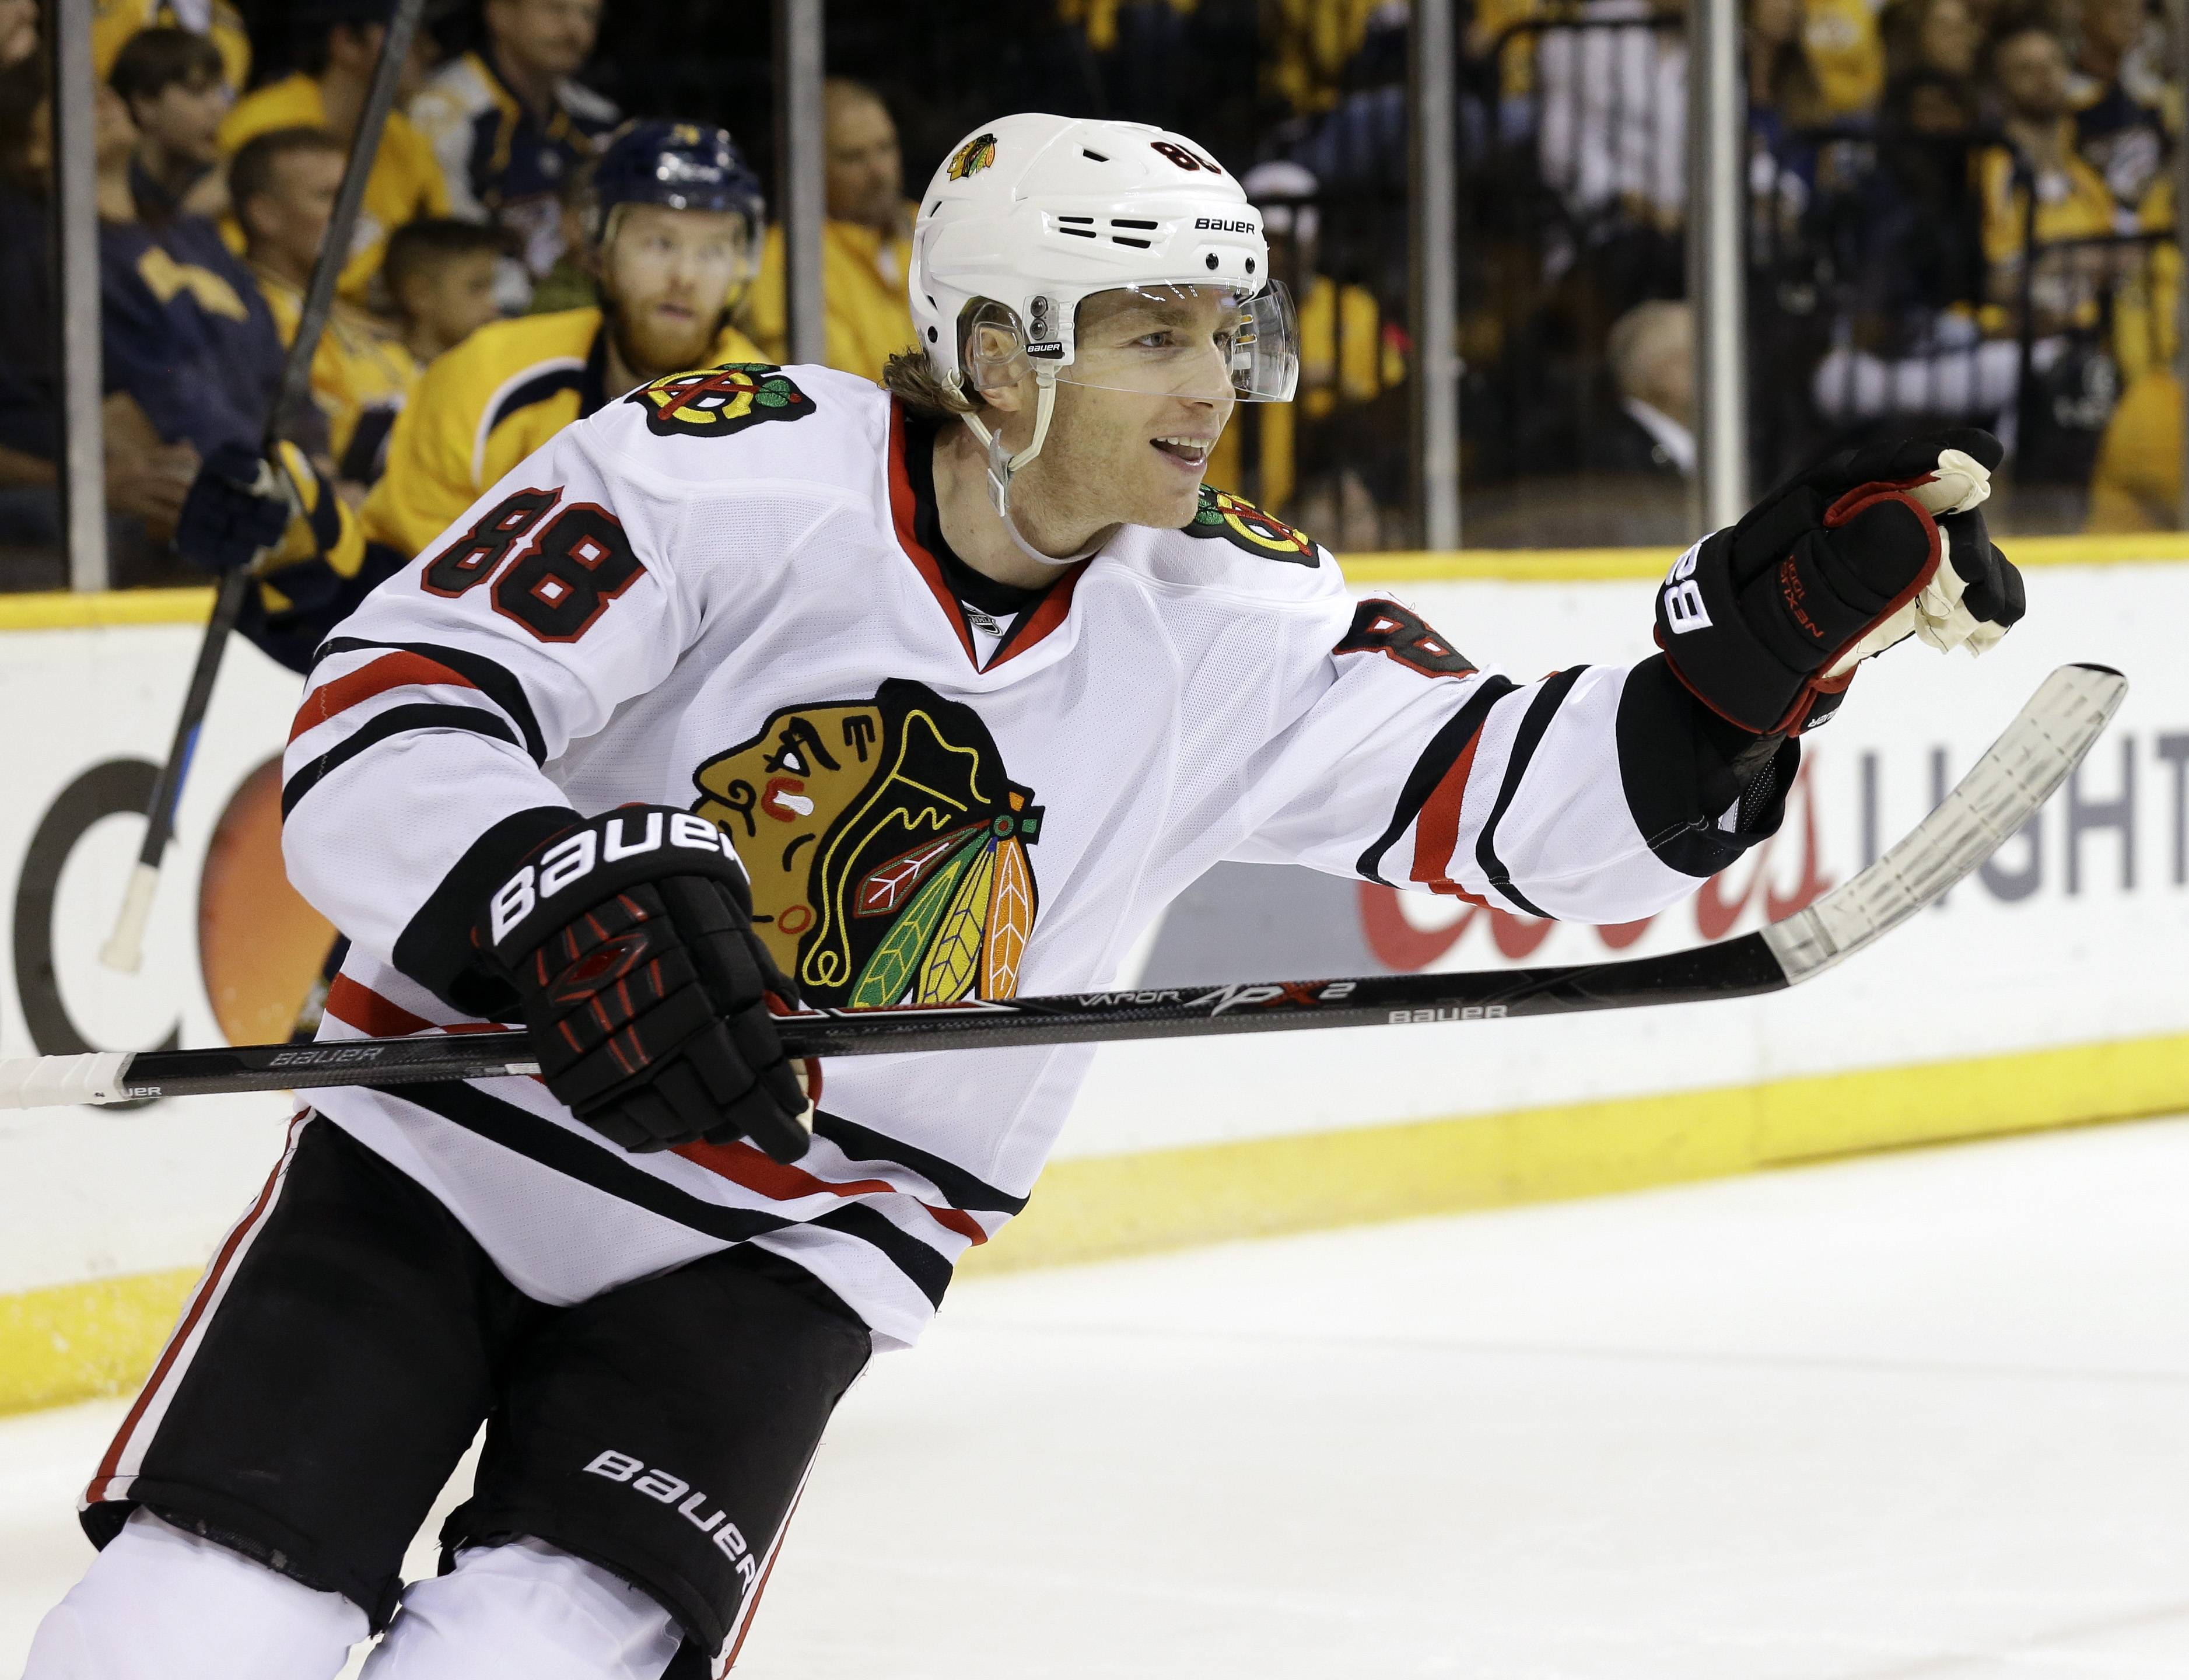 Report: Chicago Blackhawks' Patrick Kane subject of sex assault investigation